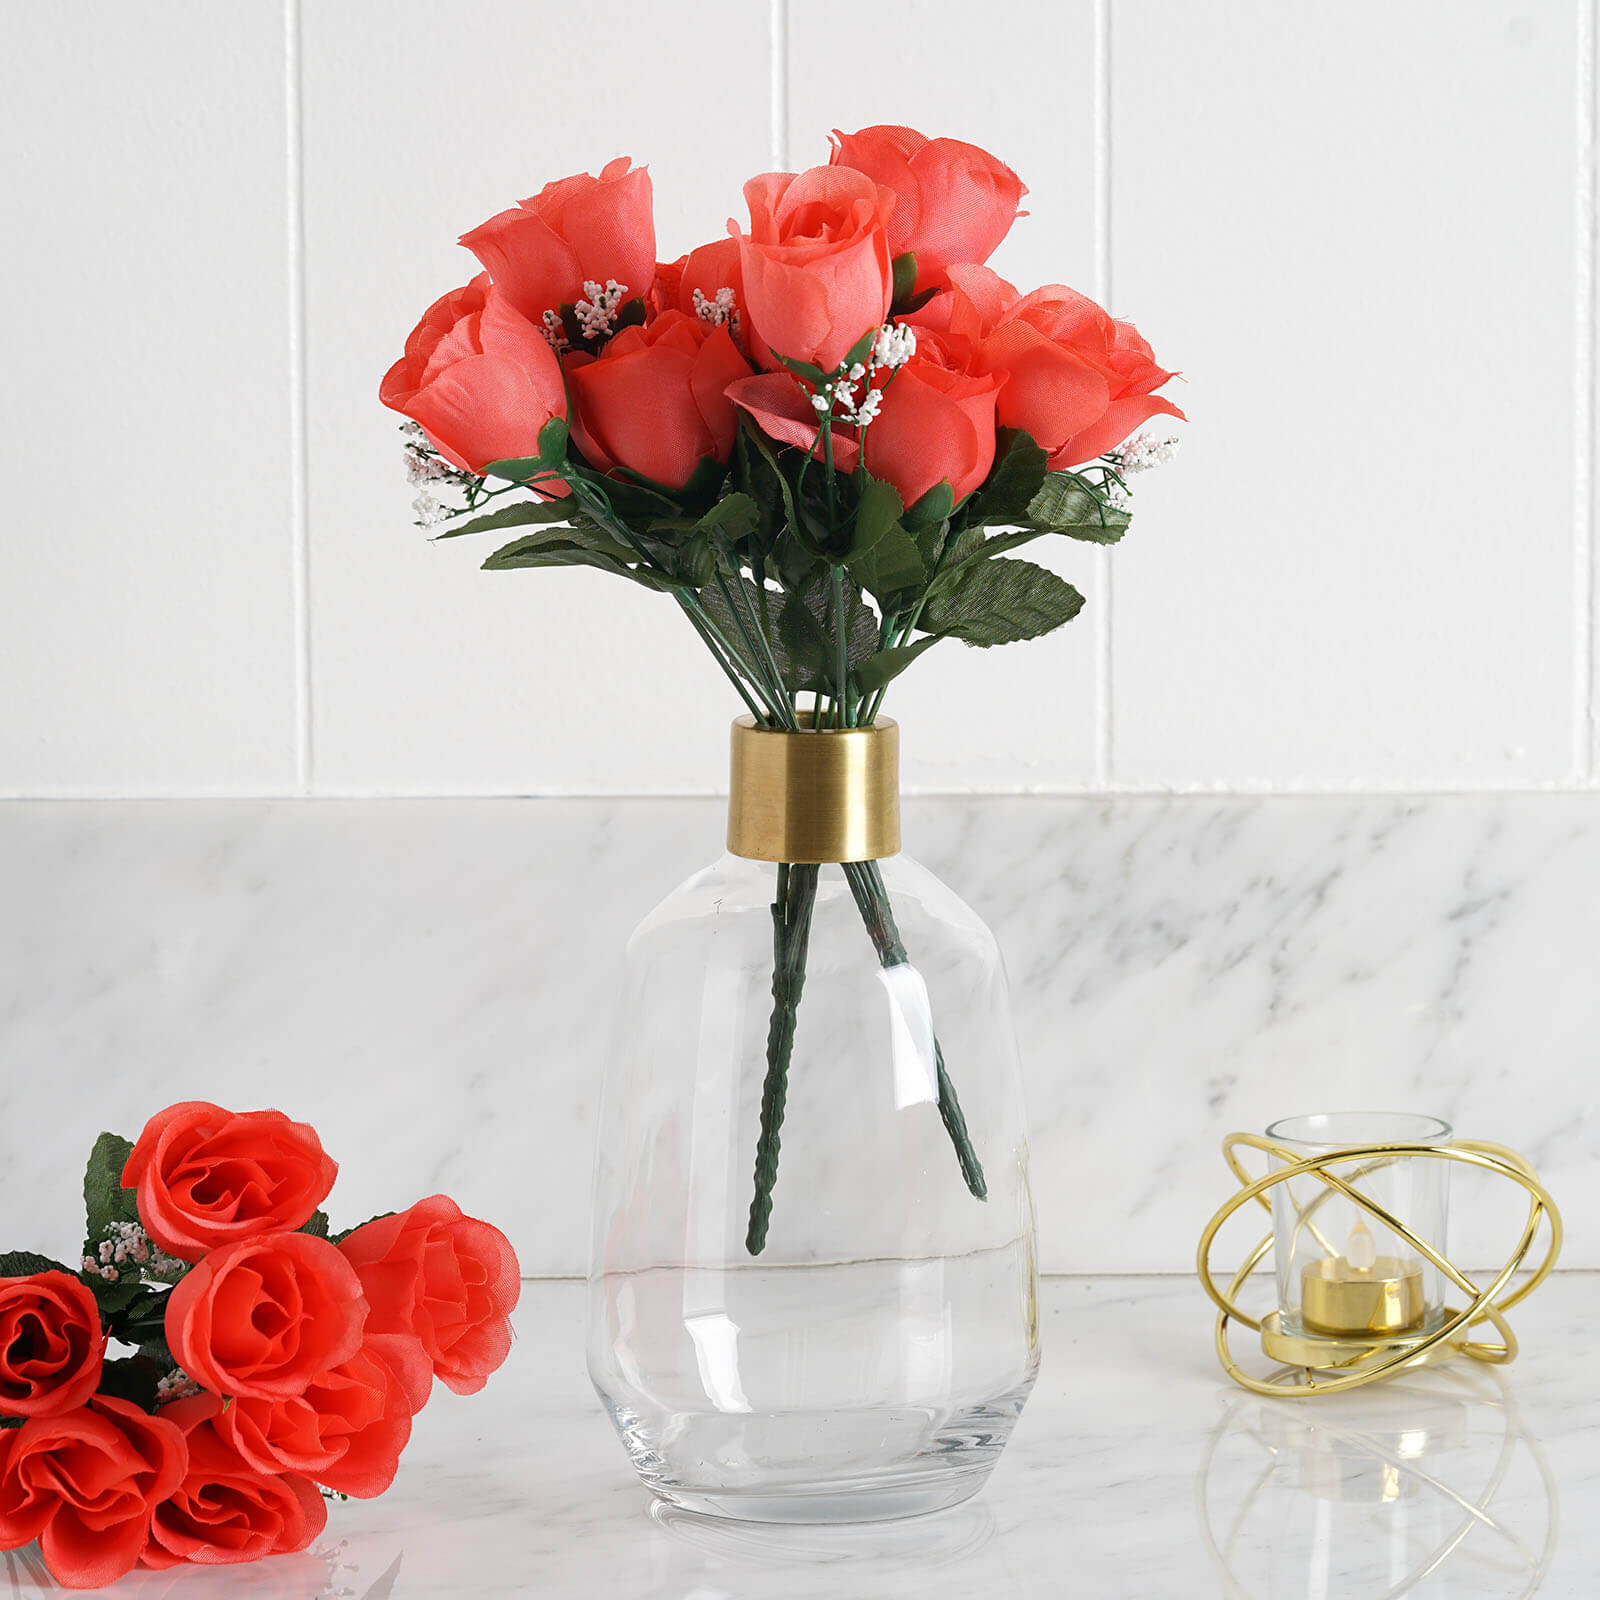 84 artificial silk rose buds coral efavormart silk rose buds coral 84pk mightylinksfo Image collections